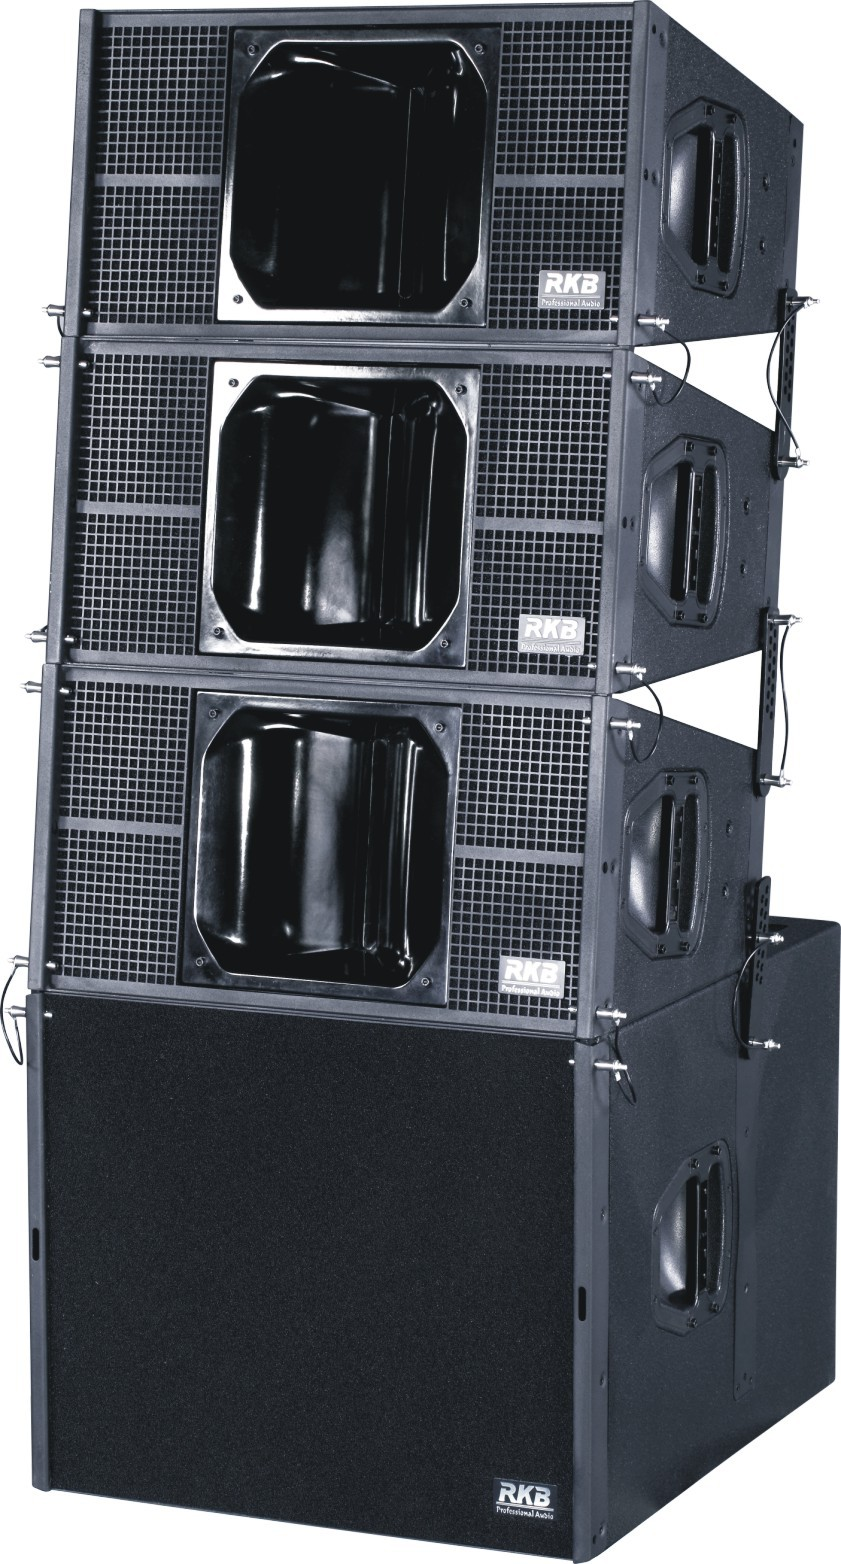 q1 line array dual 10 professional audio concert speakers buy q1 line array concert speakers. Black Bedroom Furniture Sets. Home Design Ideas